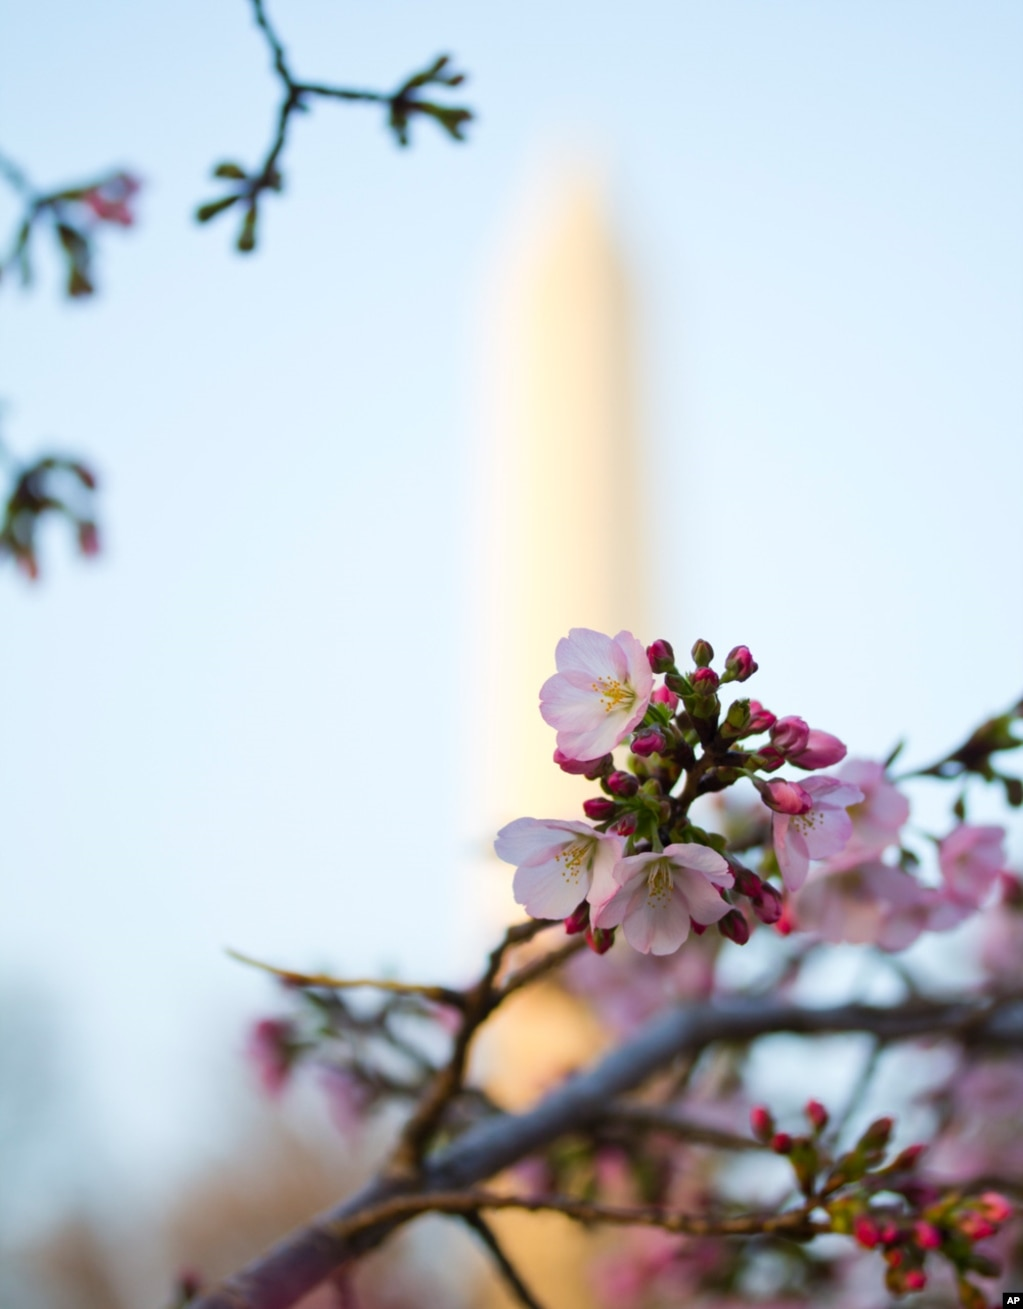 The Washington Monument backdrops the blooming Cherry Blossoms in Washington, March 18, 2012. (Photo: Andrew Bossi)